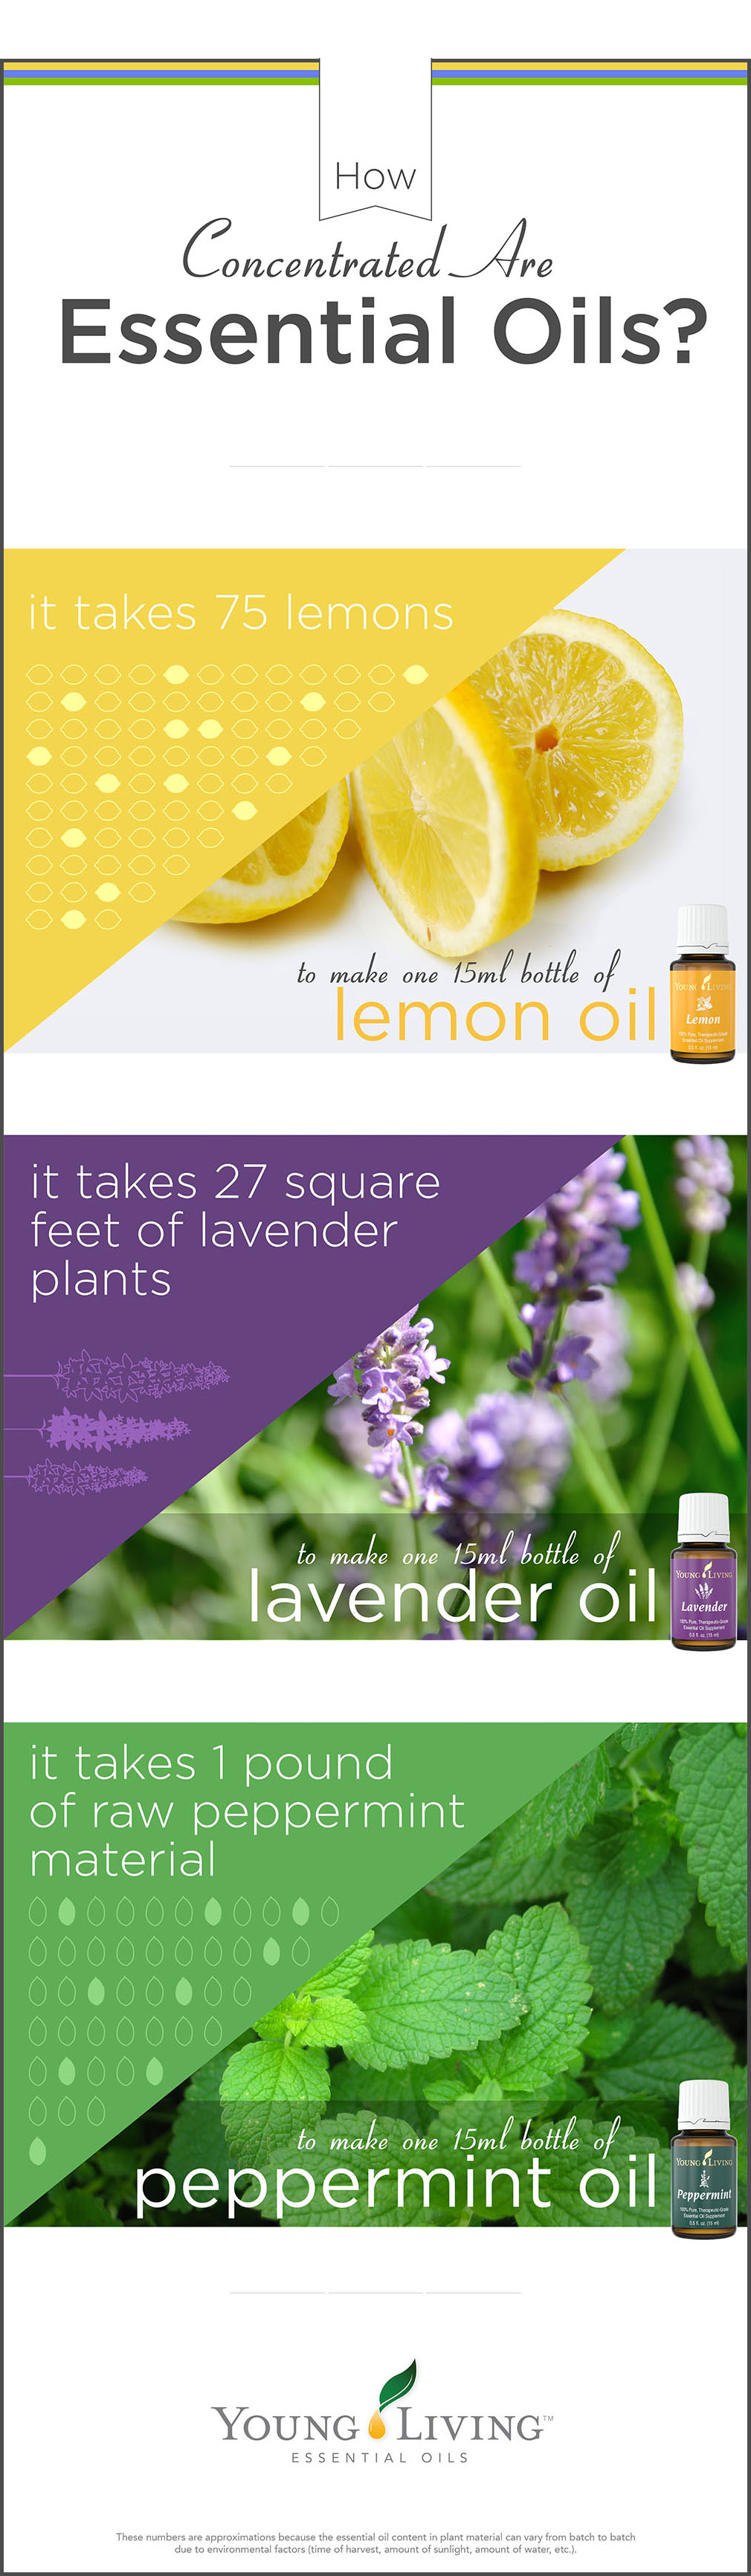 Young Living Essential Oils - How Concentrated Oils Are; For each 15ml bottle it takes: 75 lemons; 27 square feet of lavender plants; 1 pound of peppermint material.